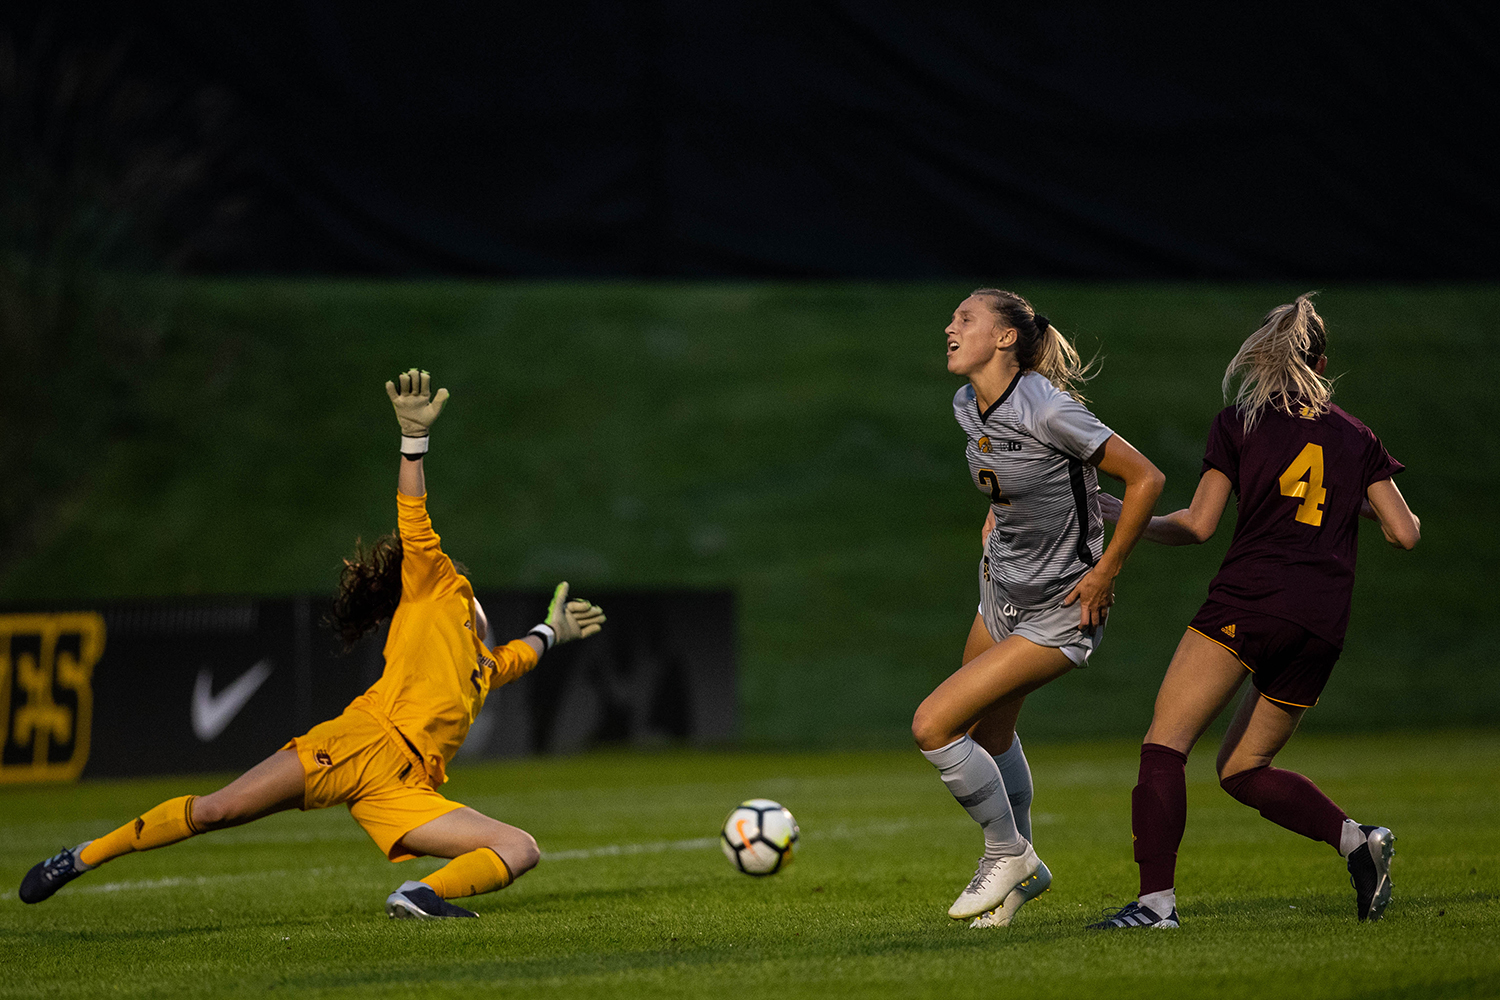 Iowa midfielder Hailey Rydberg reacts as her shot drifts wide during Iowa's game against Central Michigan on Friday, Aug. 31, 2018. The Hawkeyes defeated the Chippewas 3-1.